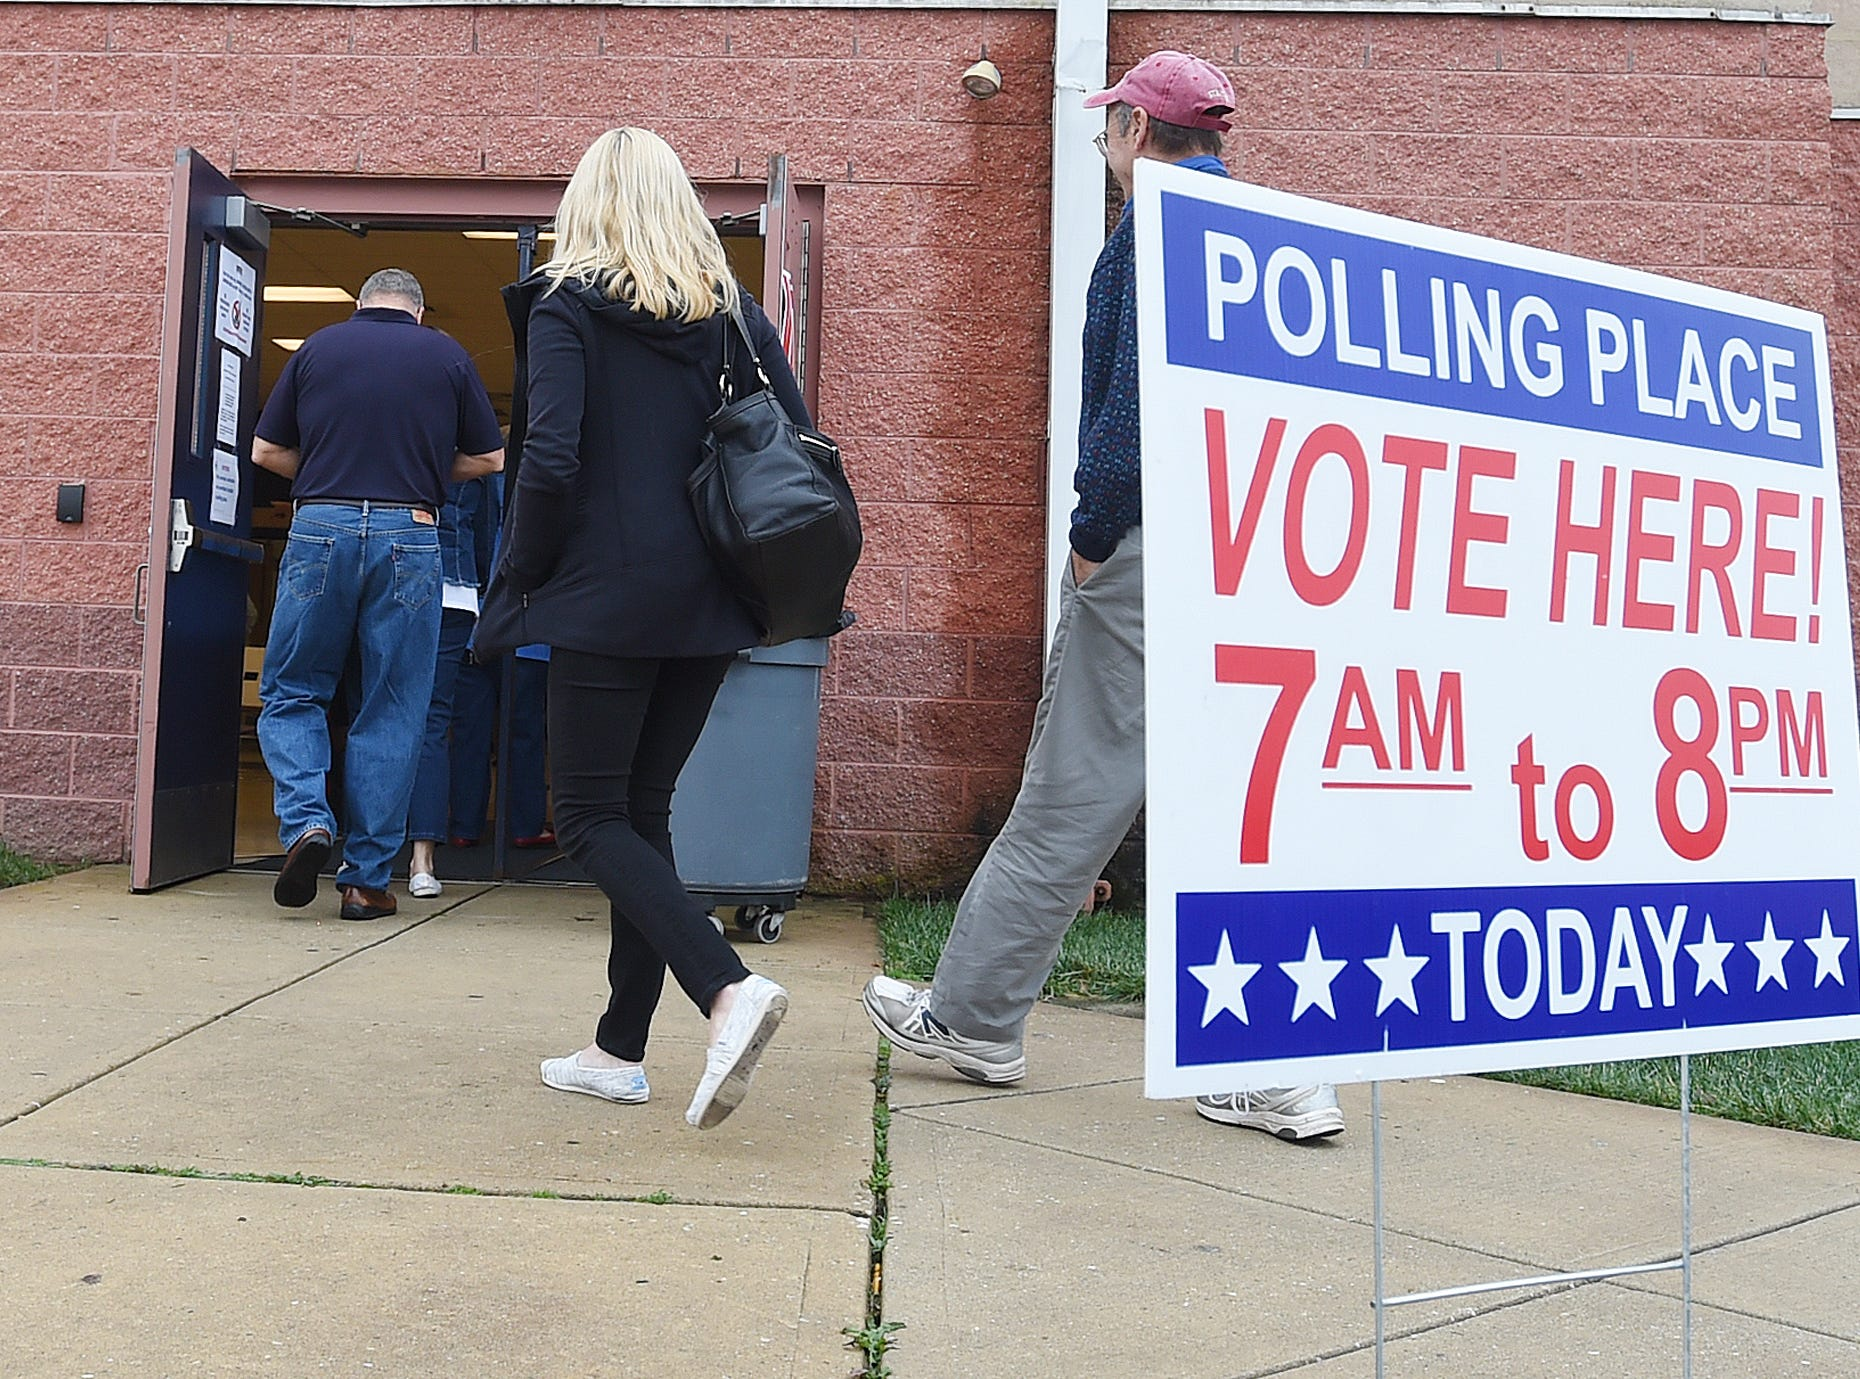 People file into Beacon Middle School near Angola as Voter turnout in eastern Sussex County has been steady at polling places in Rehoboth, Roxana and Angola as candidates still greet supporters for their support.